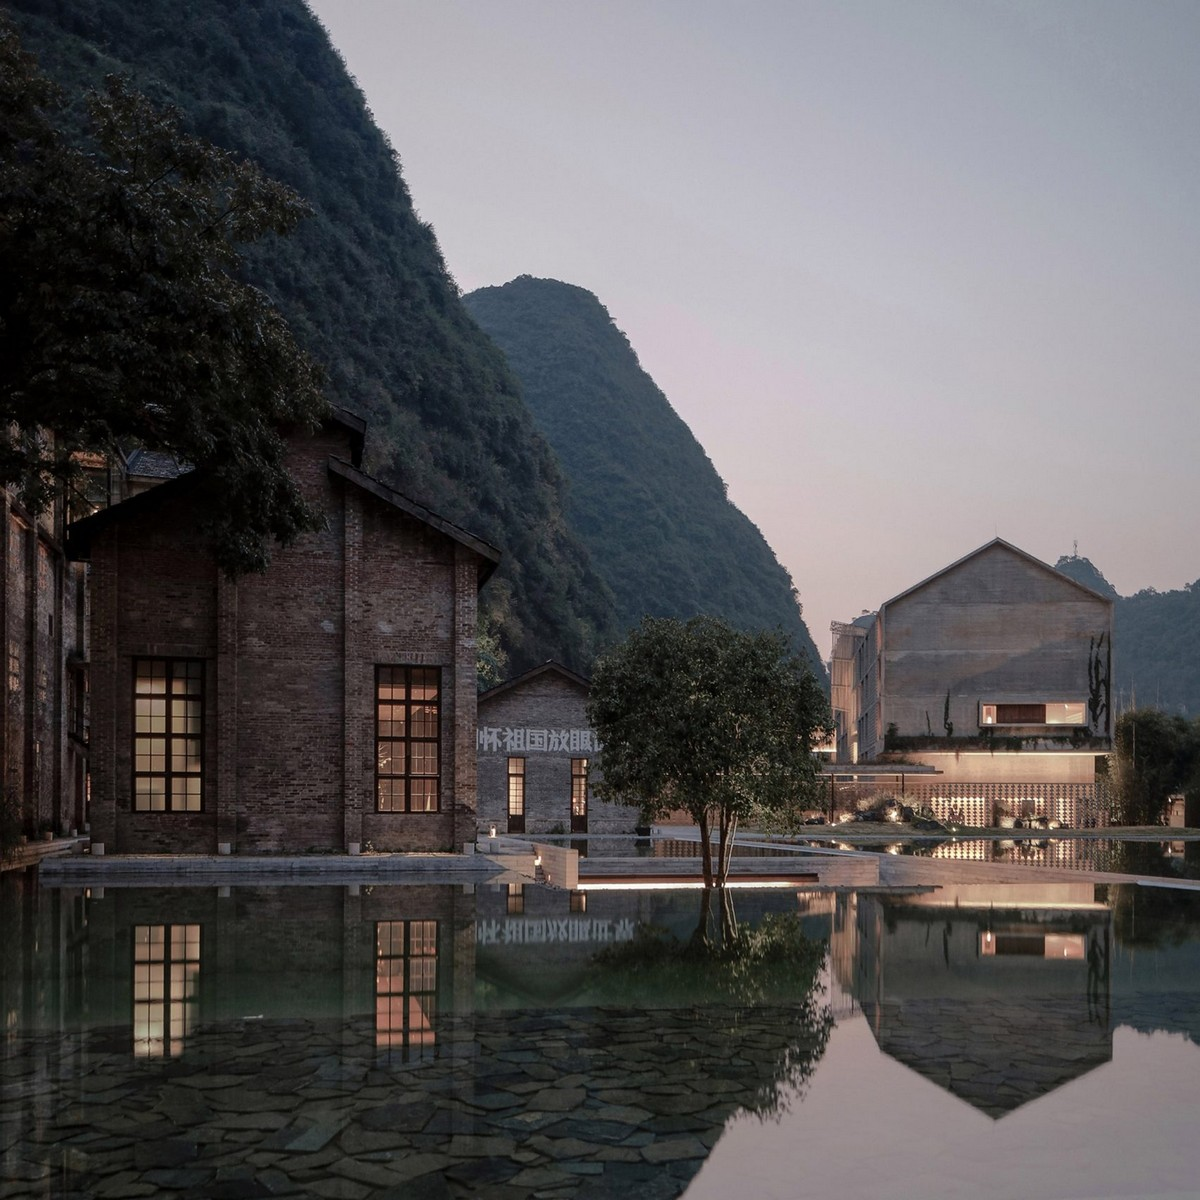 Top 10 Best Hotels of 2017: A Dezeen Selection | Thinking about next years vacation? We show you some awesome locations. #tophotels #hoteldesign #besthotels #luxuryhotels #traveldestinations #centertables best hotels Top 10 Best Hotels of 2017: A Dezeen Selection alila yangshuo vector architects gong dong resort hotel china dezeen sq1 1704x1704